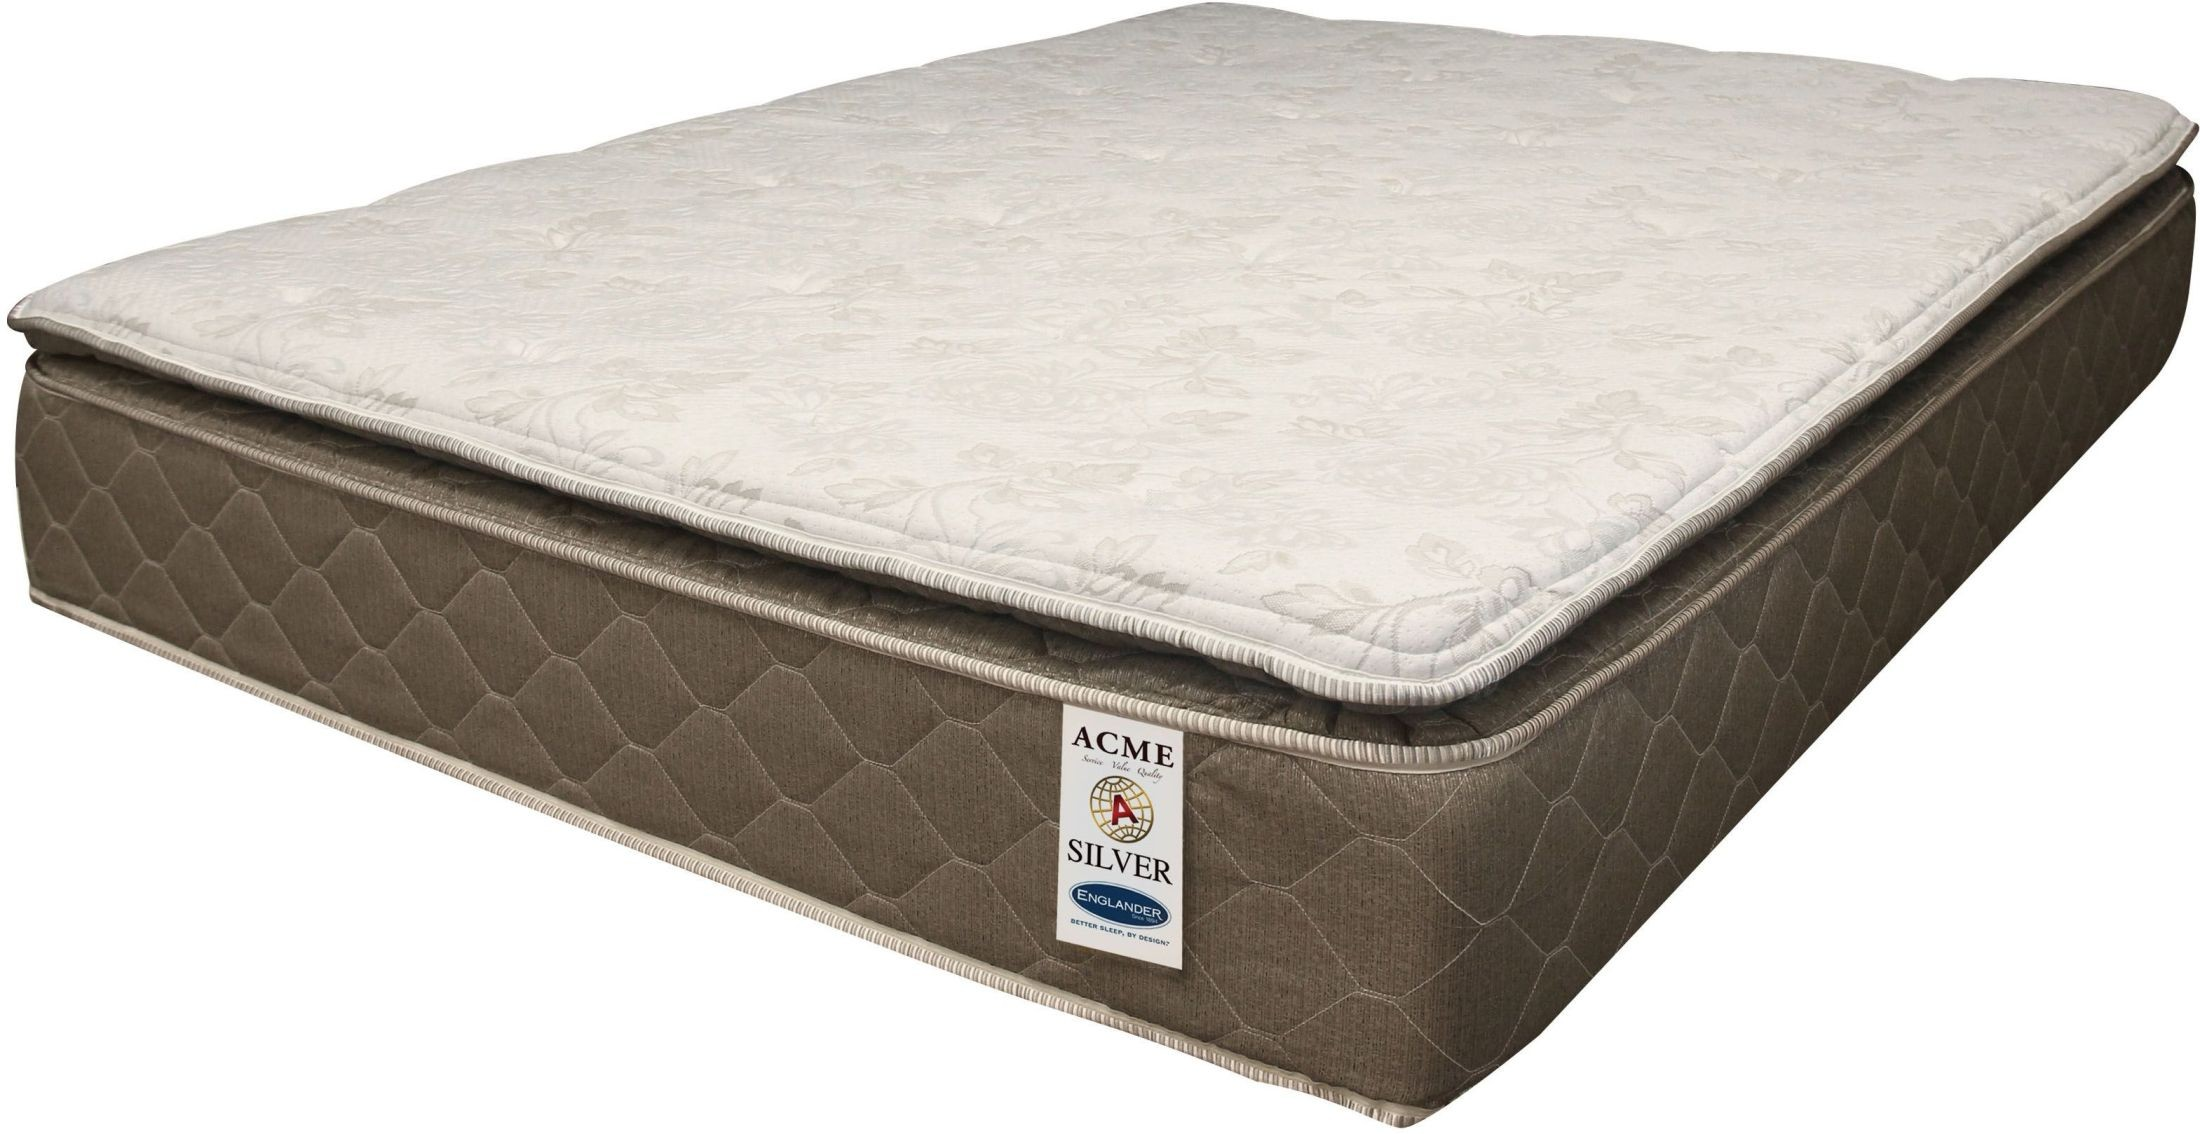 Pillow Top King Mattress Englander Silver 12